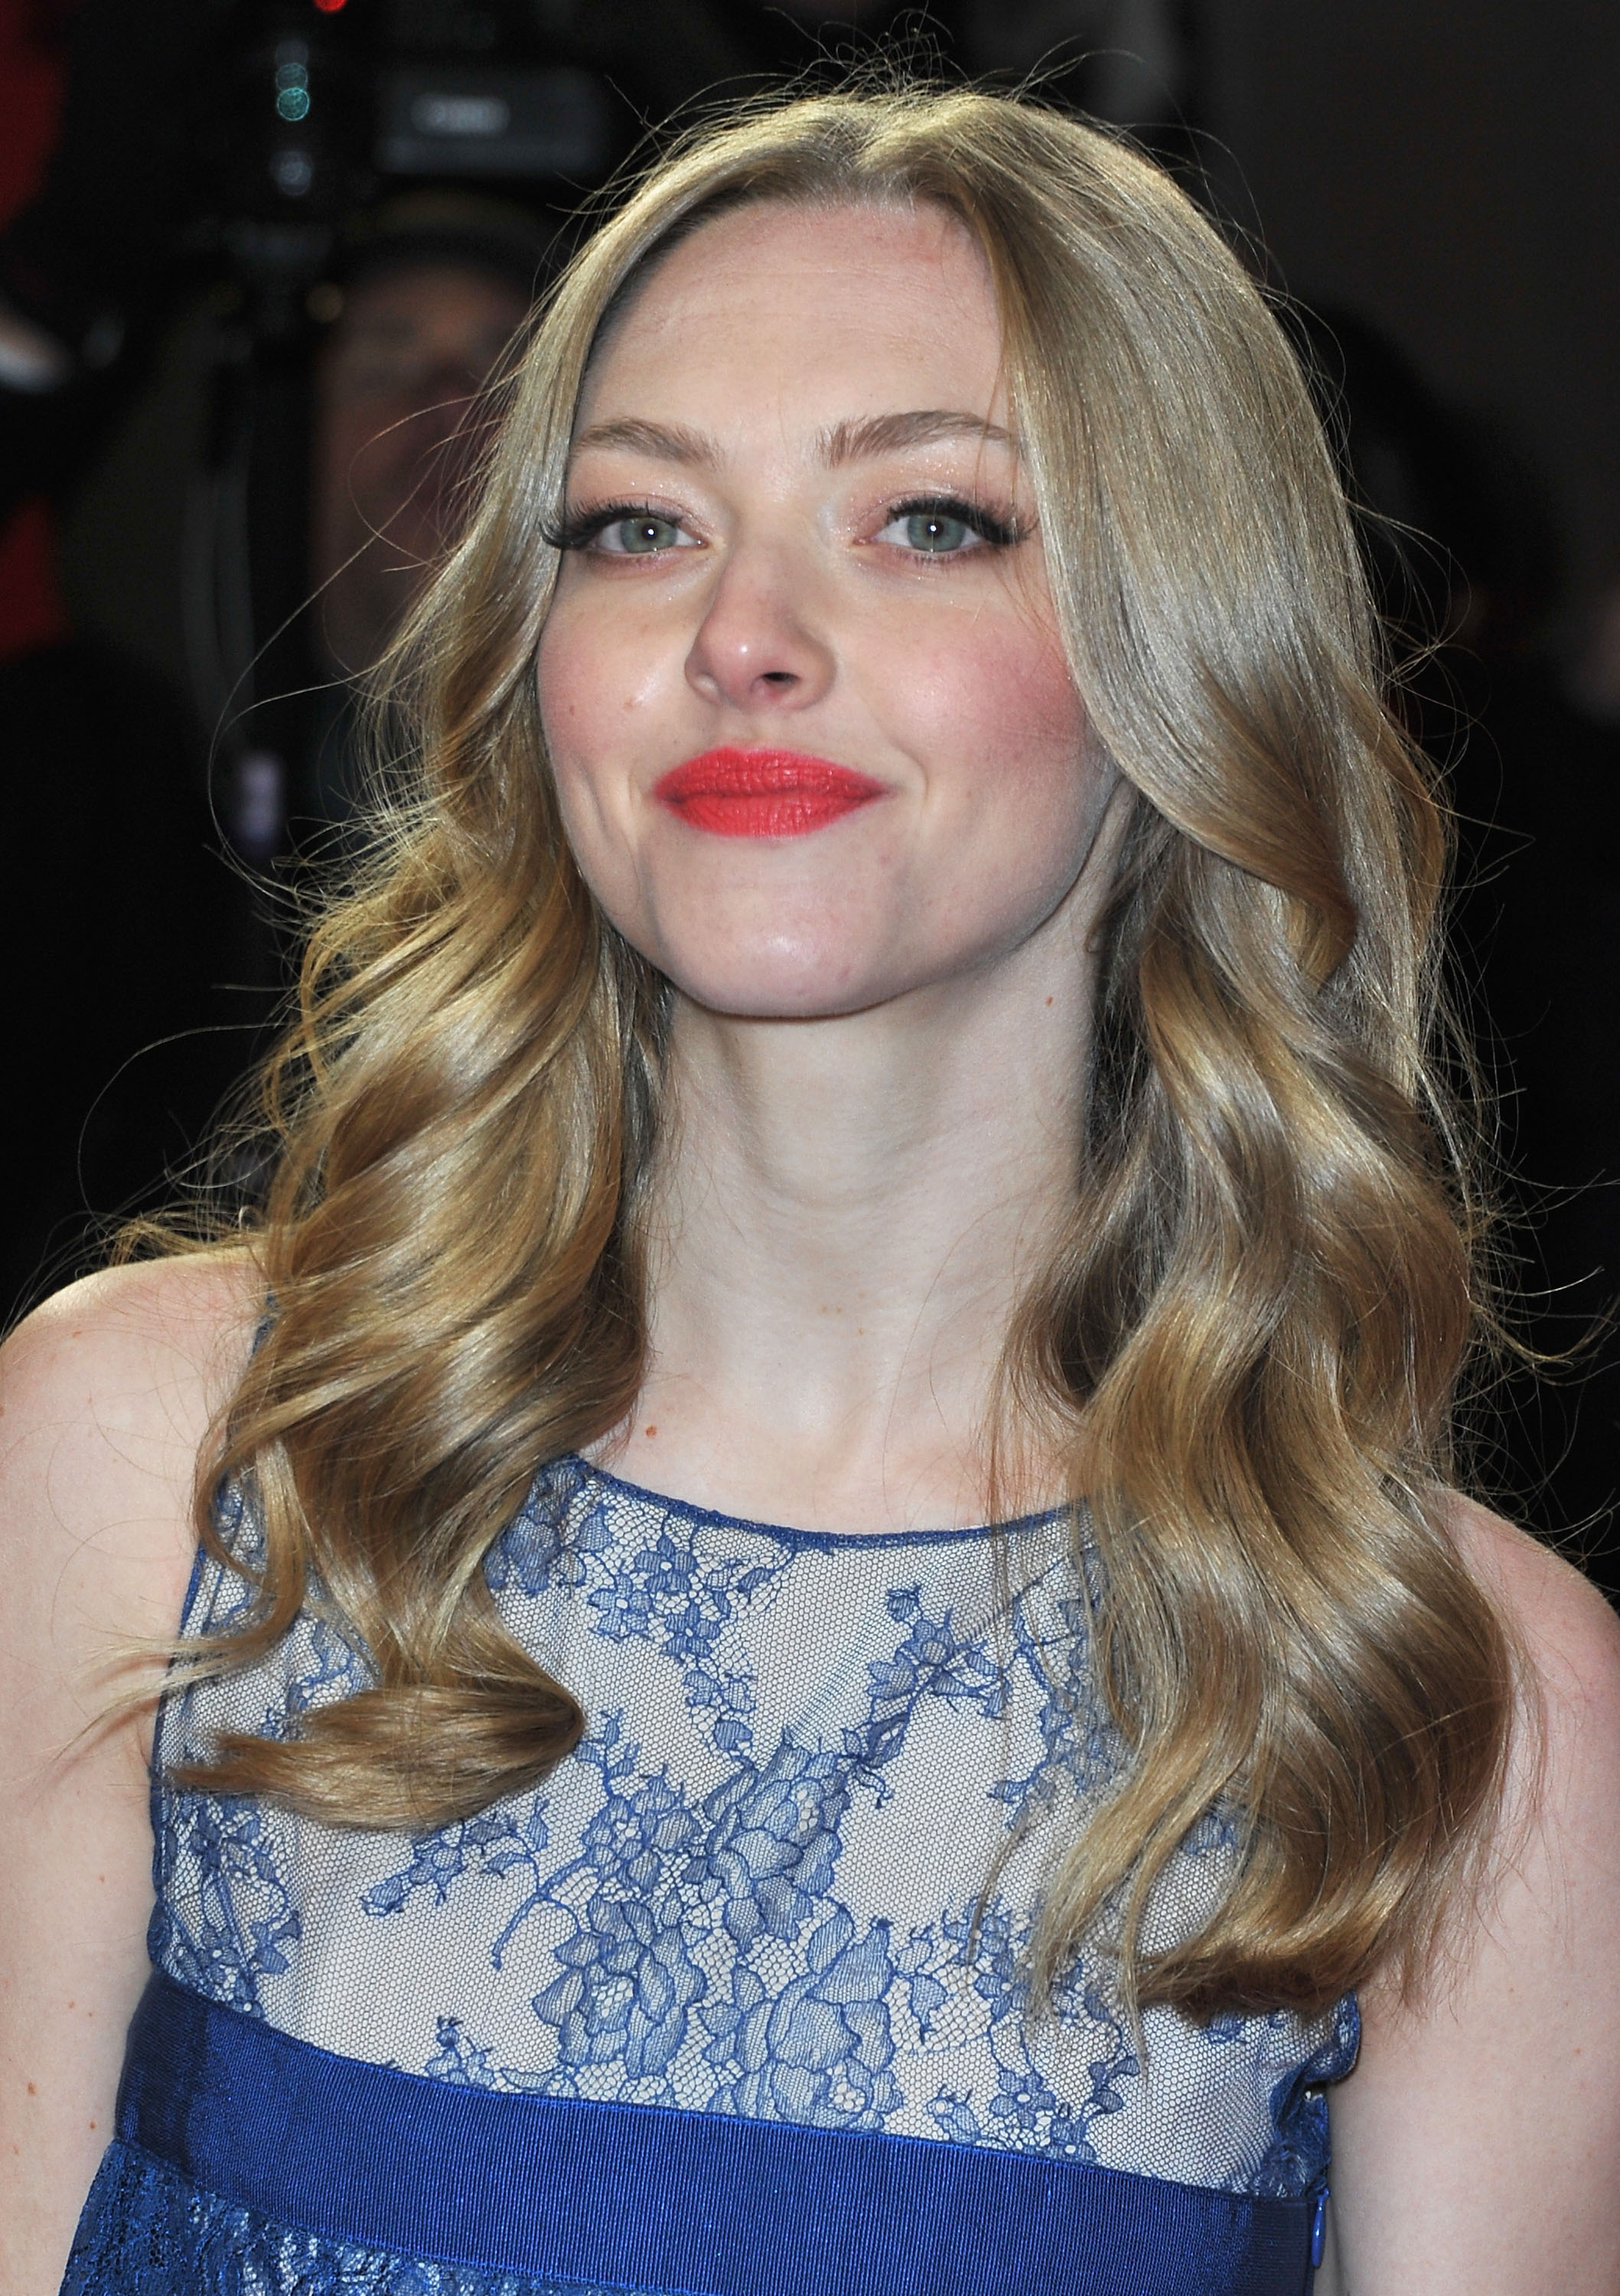 Amanda Seyfried posed on the red carpet at the premiere of Lovelace on Saturday.